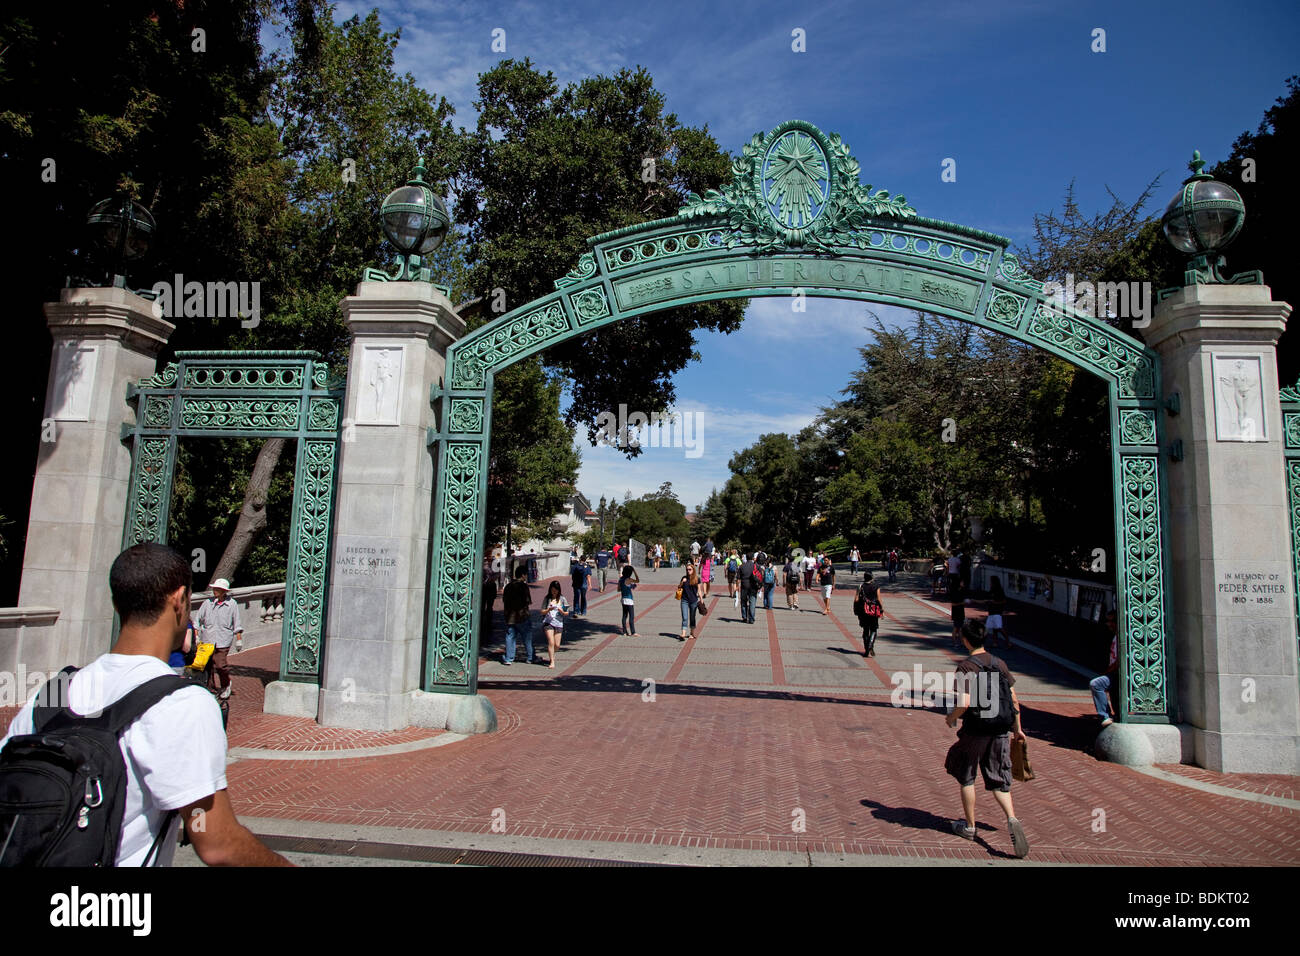 berkeley berkley college university - Stock Image